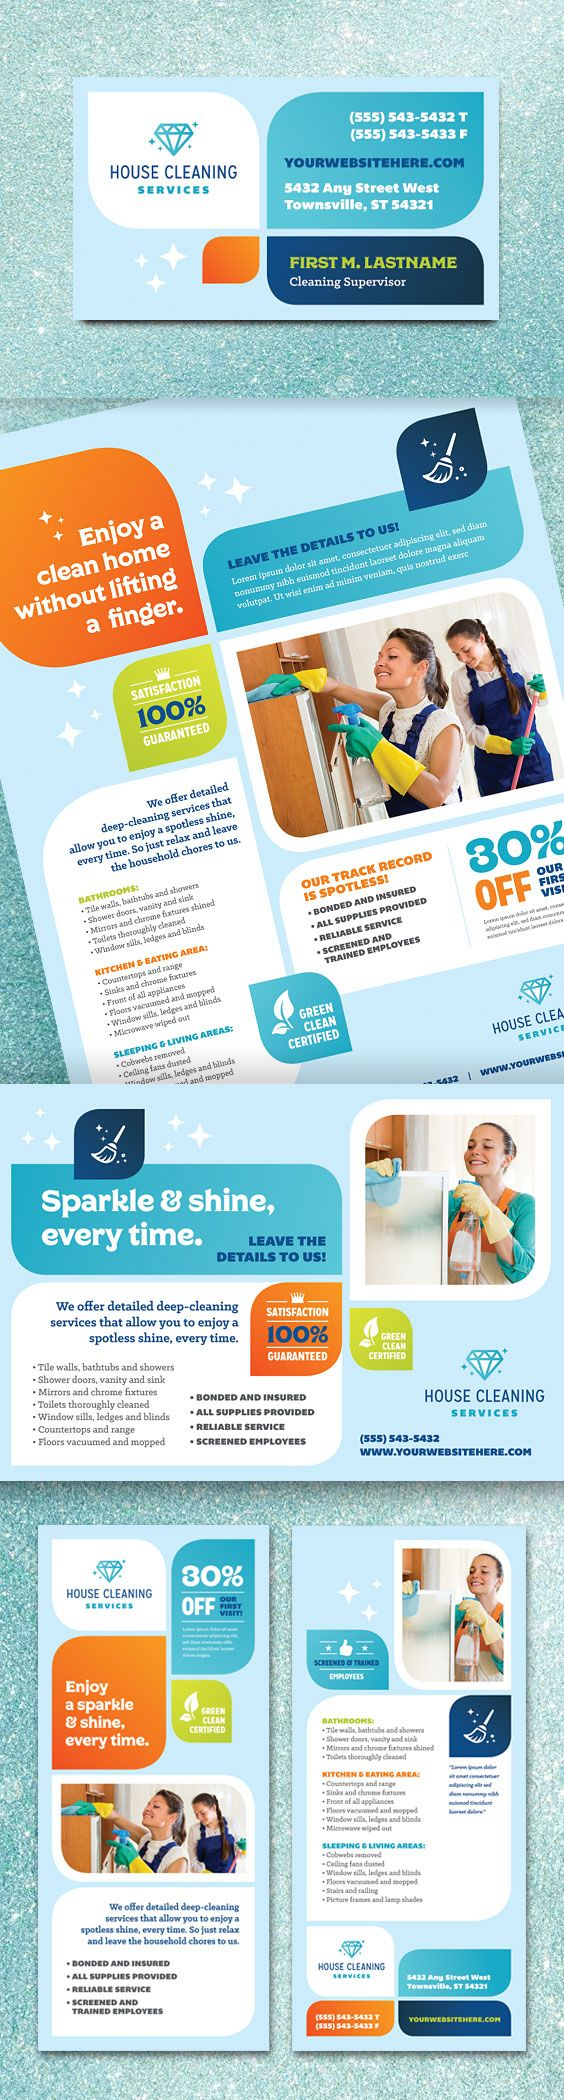 best images about cleaning business flyers create sparkling promotional flyers brochures ads rack cards and postcards for your professional cleaning business eye catching ready to customize